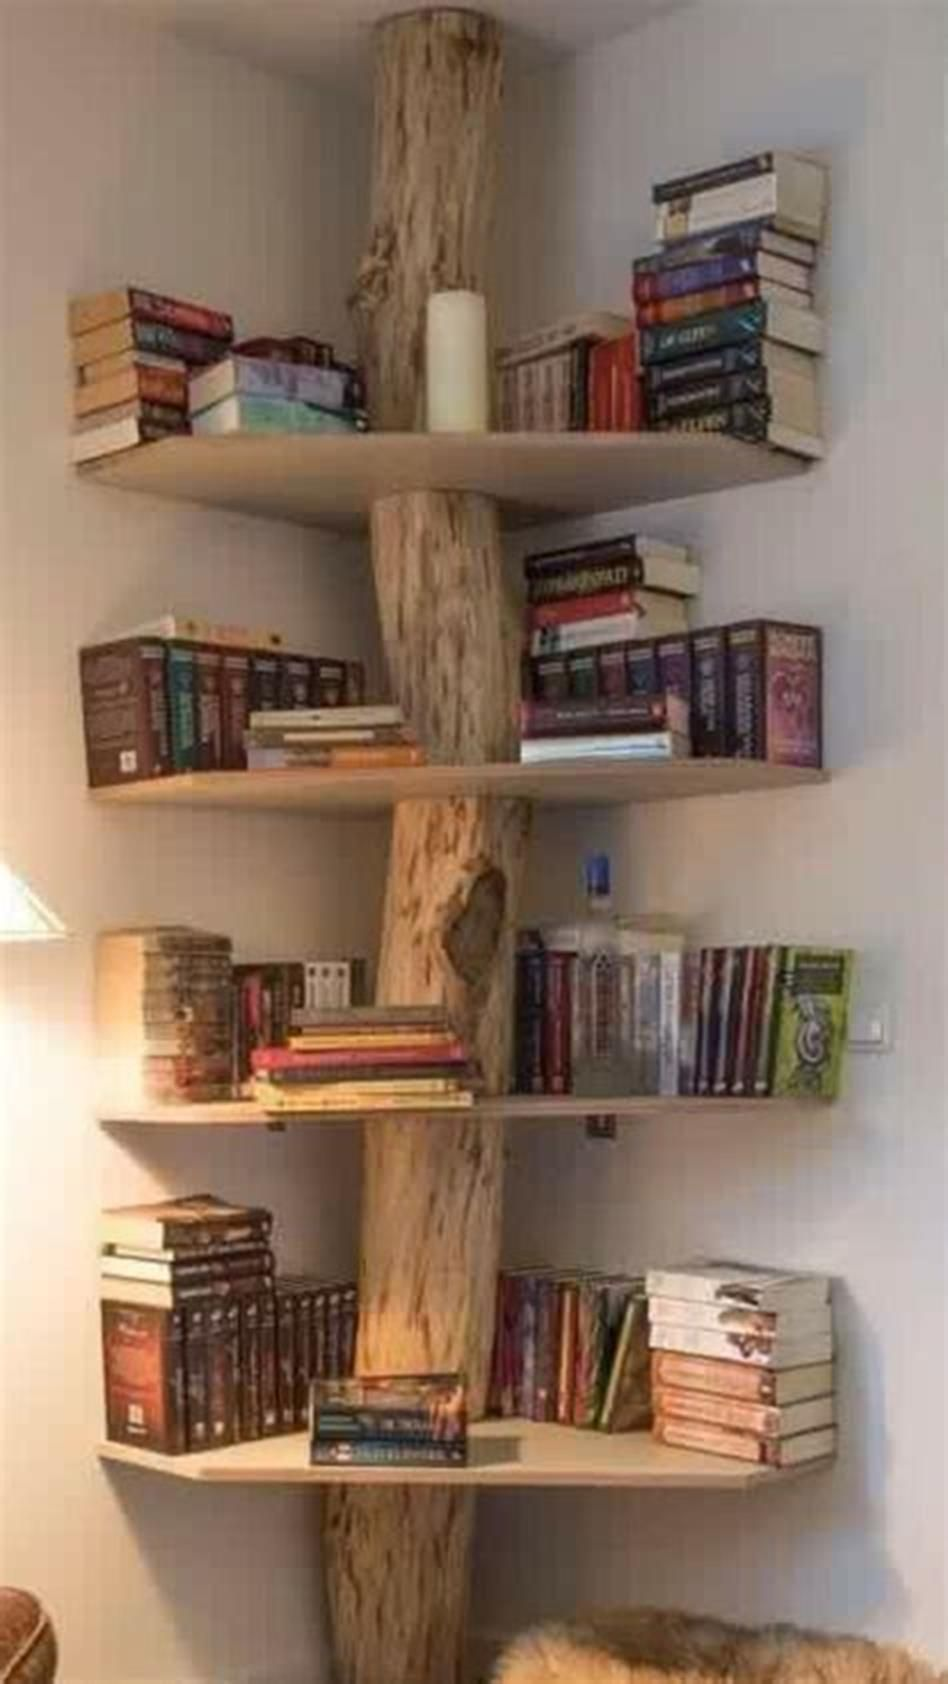 35 Unique and Creative Bookshelves Design Ideas – DecoRecent